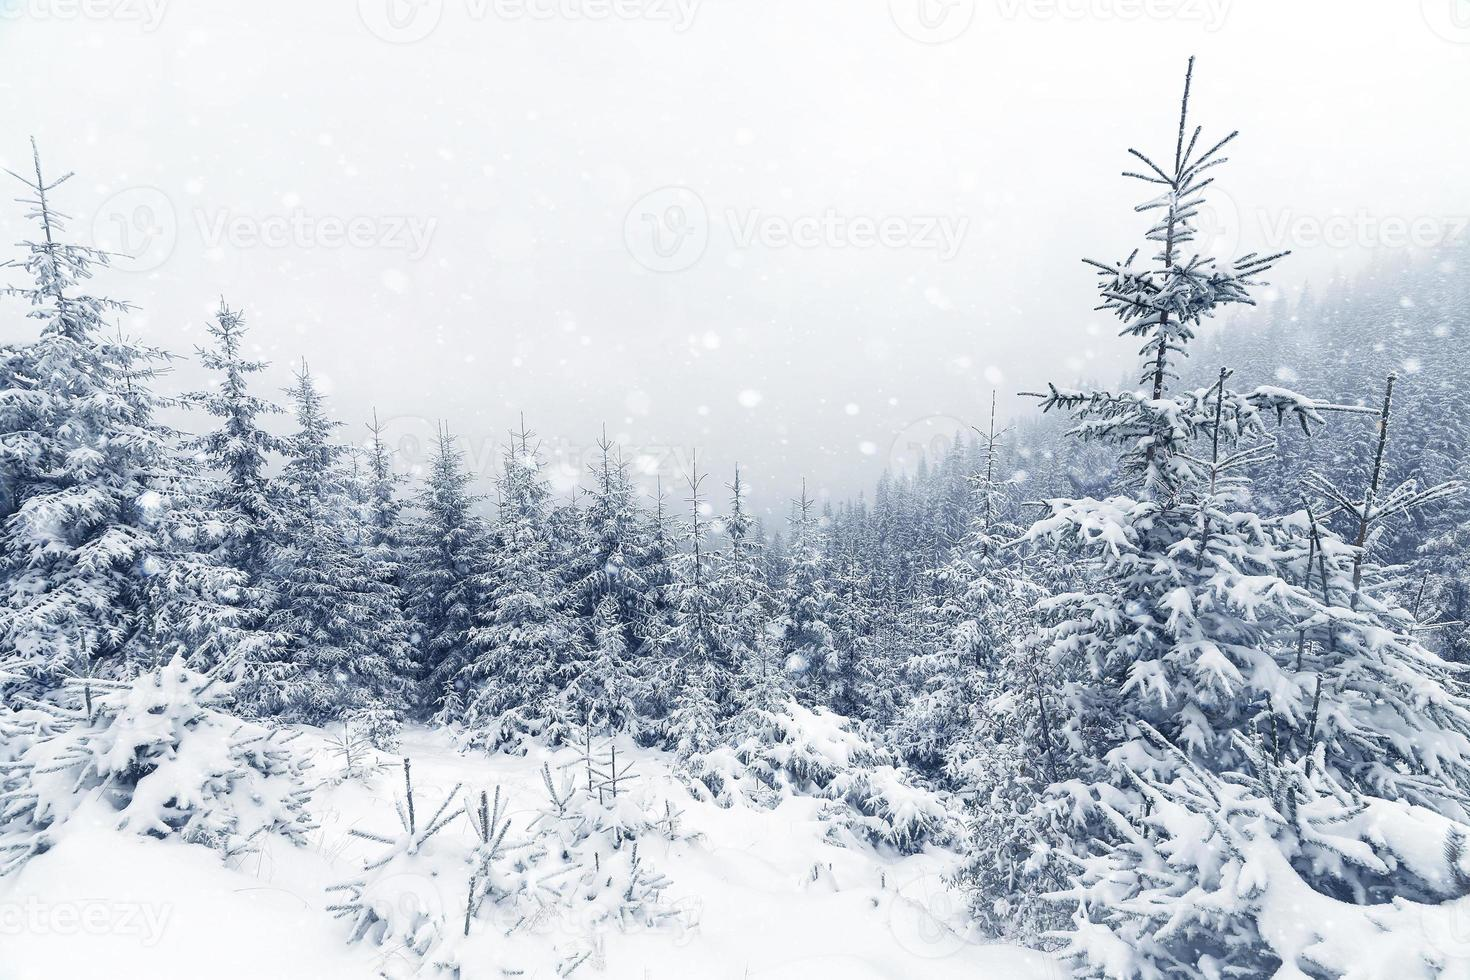 Spruce Tree foggy Forest Covered by Snow in Winter Landscape. photo